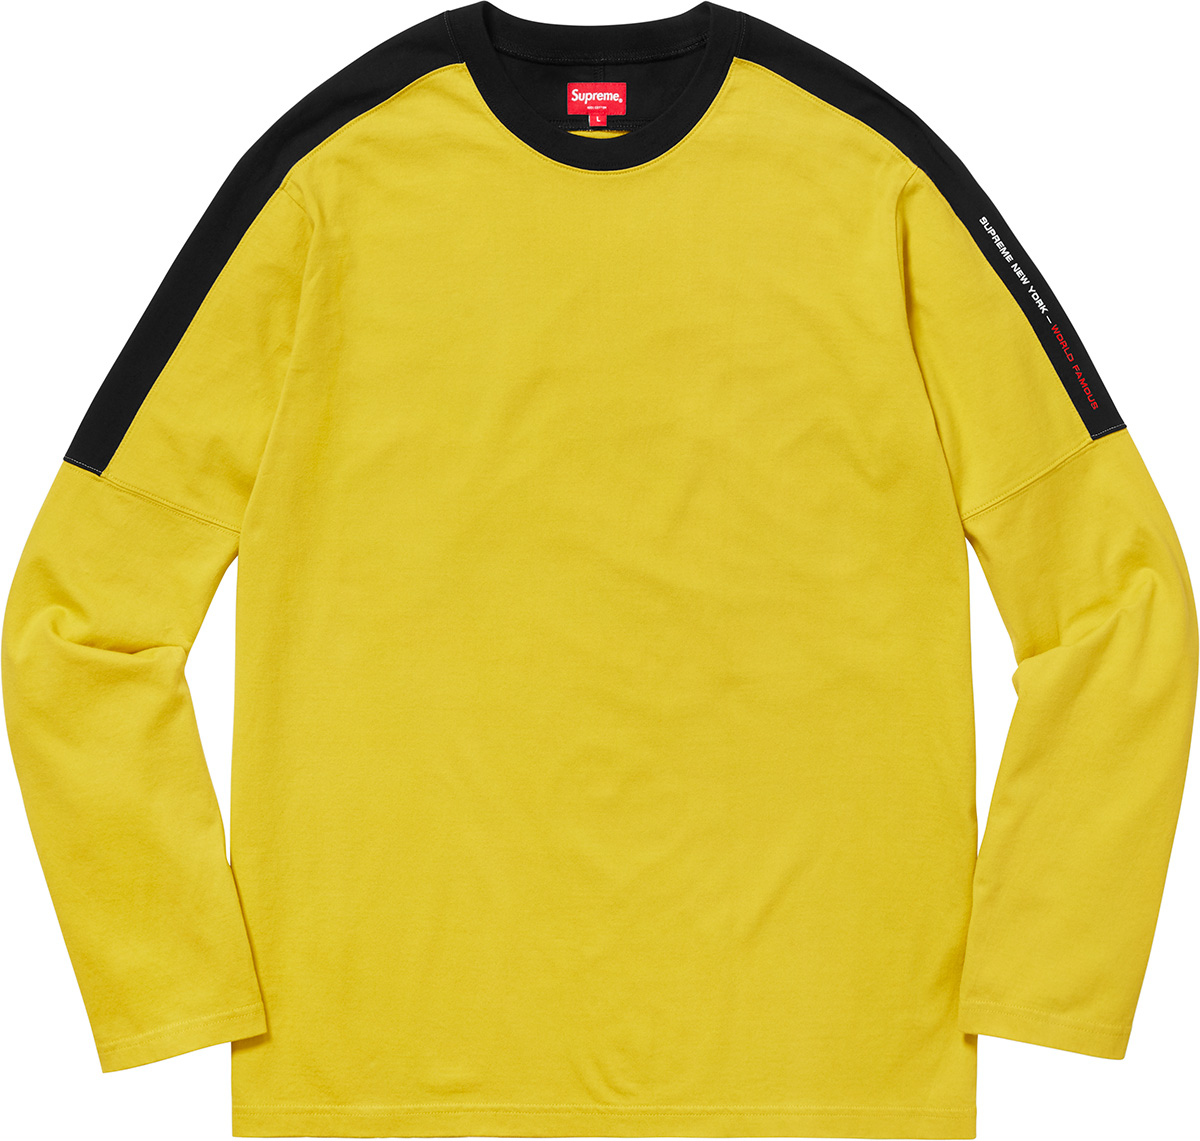 supreme-18aw-fall-winter-paneled-l-s-top